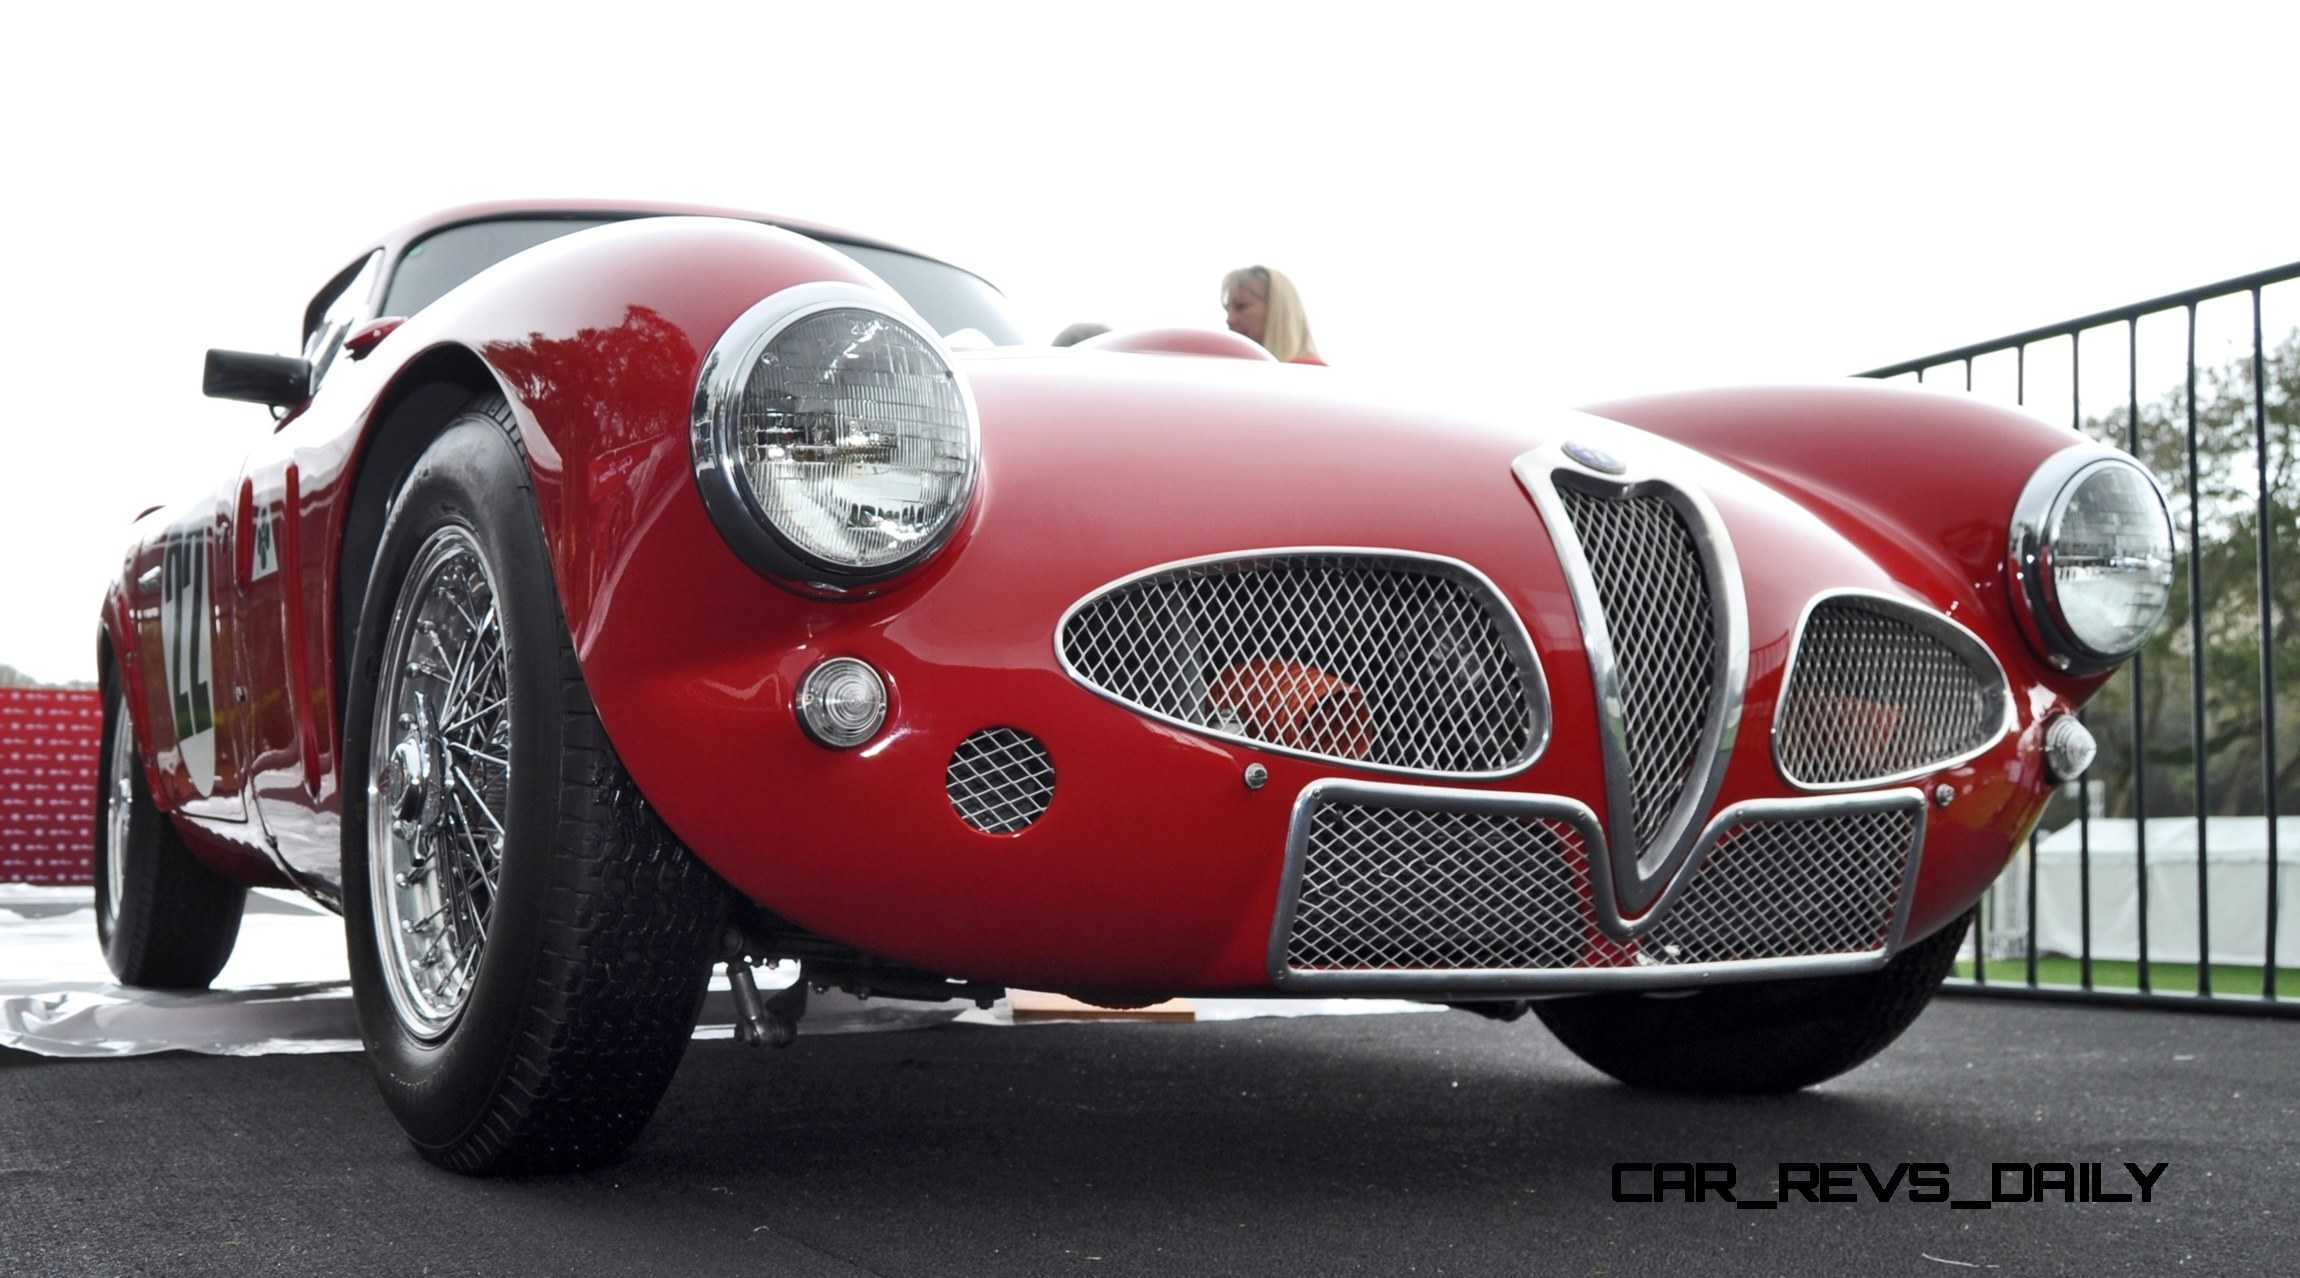 Alfa Romeo C Cm Shows Origin Of C Nose Design on Alfa Romeo C Spiders